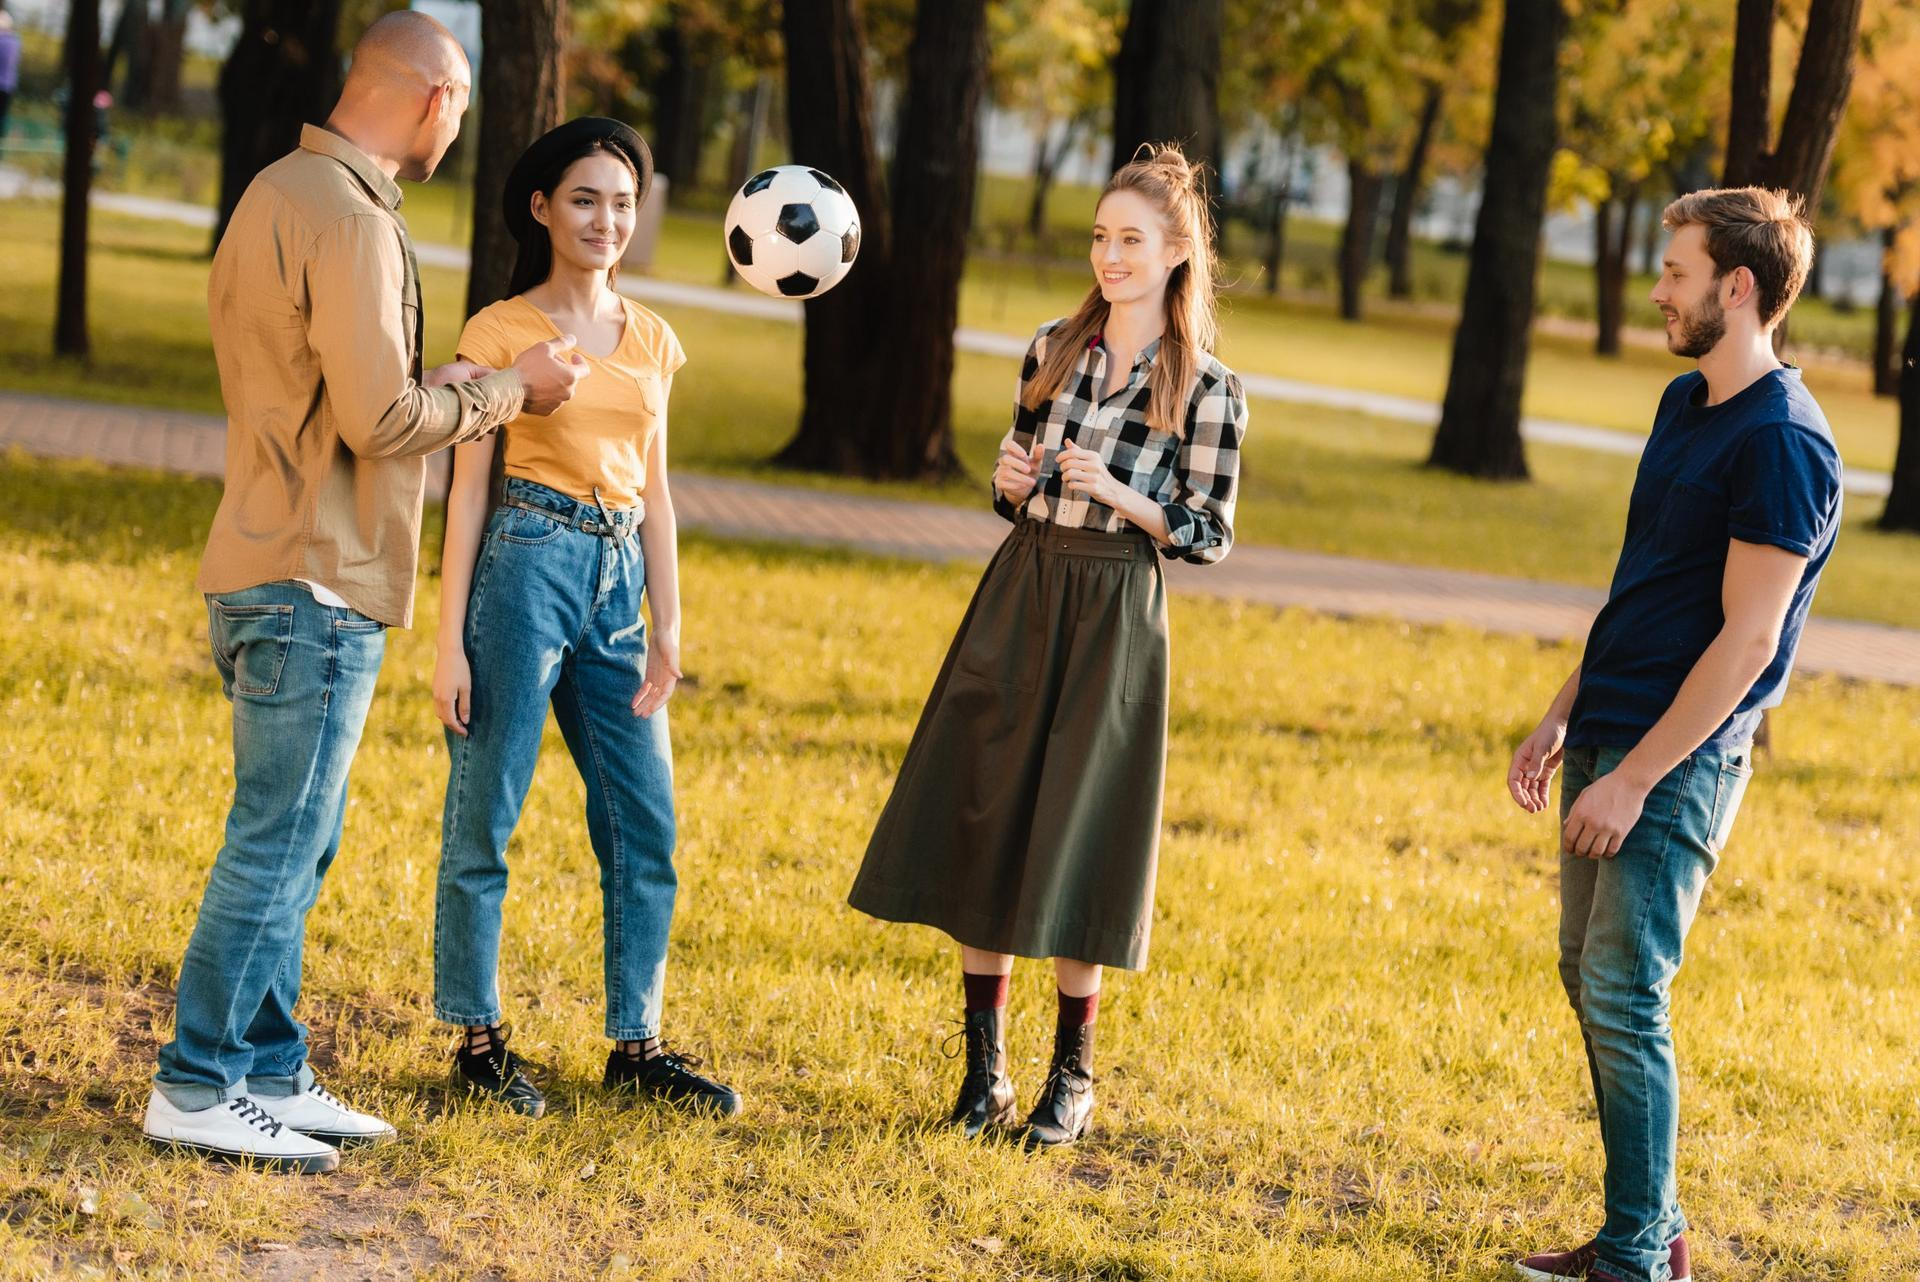 soccer-at-the-park-scaled.jpg